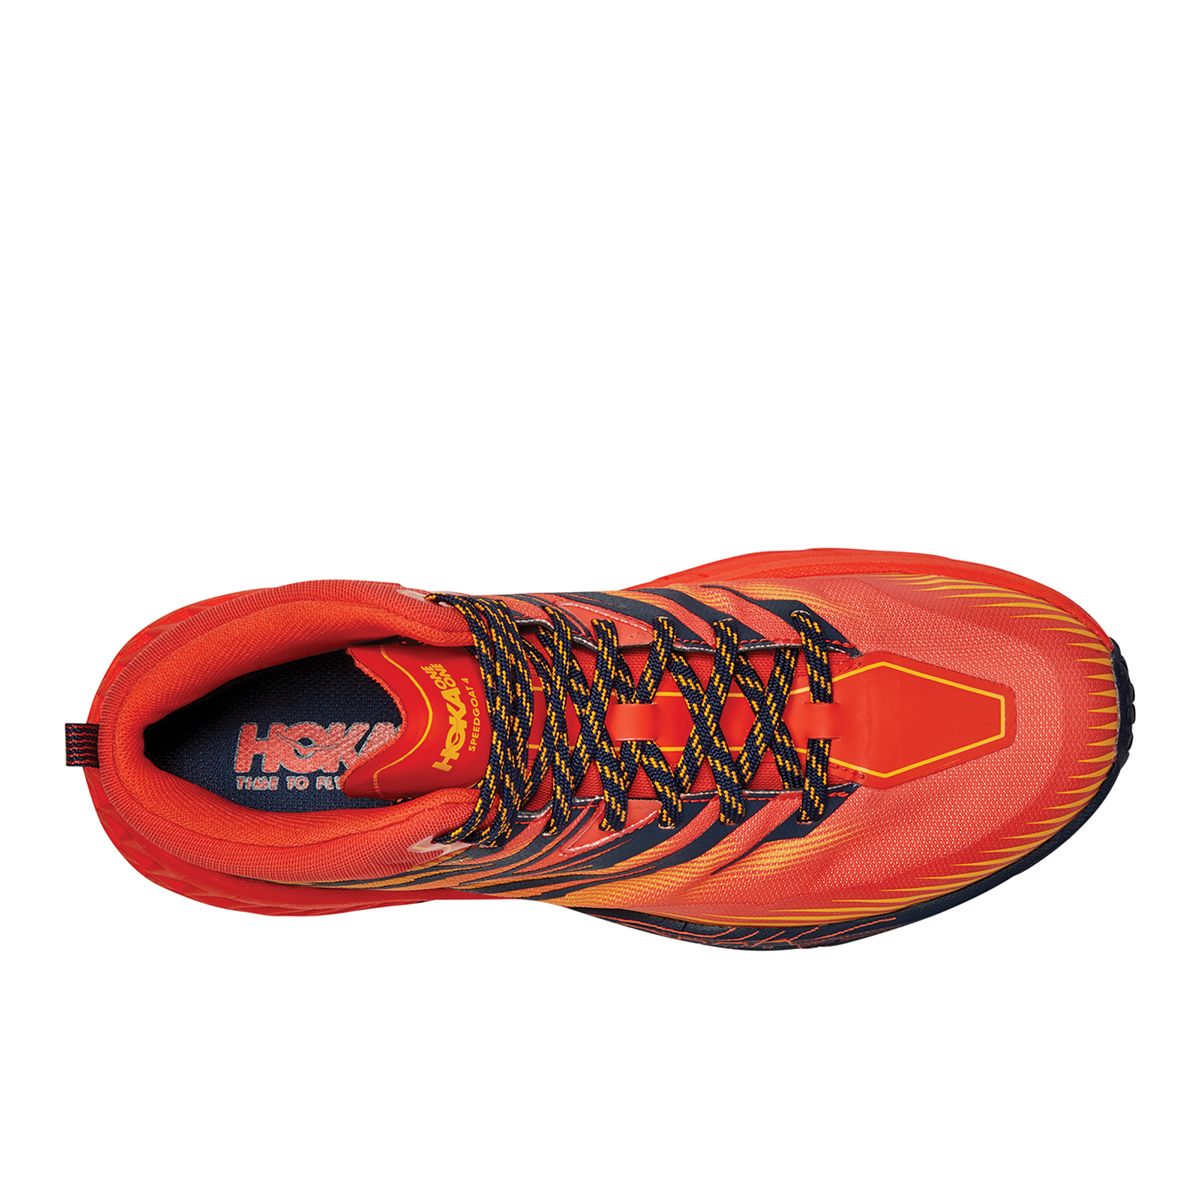 Men's Hoka One One Speedgoat Mid Gore-Tex Trail Hiking Shoe - Color: Mandarin Red / Gold Fusion - Size: 7 - Width: Regular, Mandarin Red / Gold Fusion, large, image 3